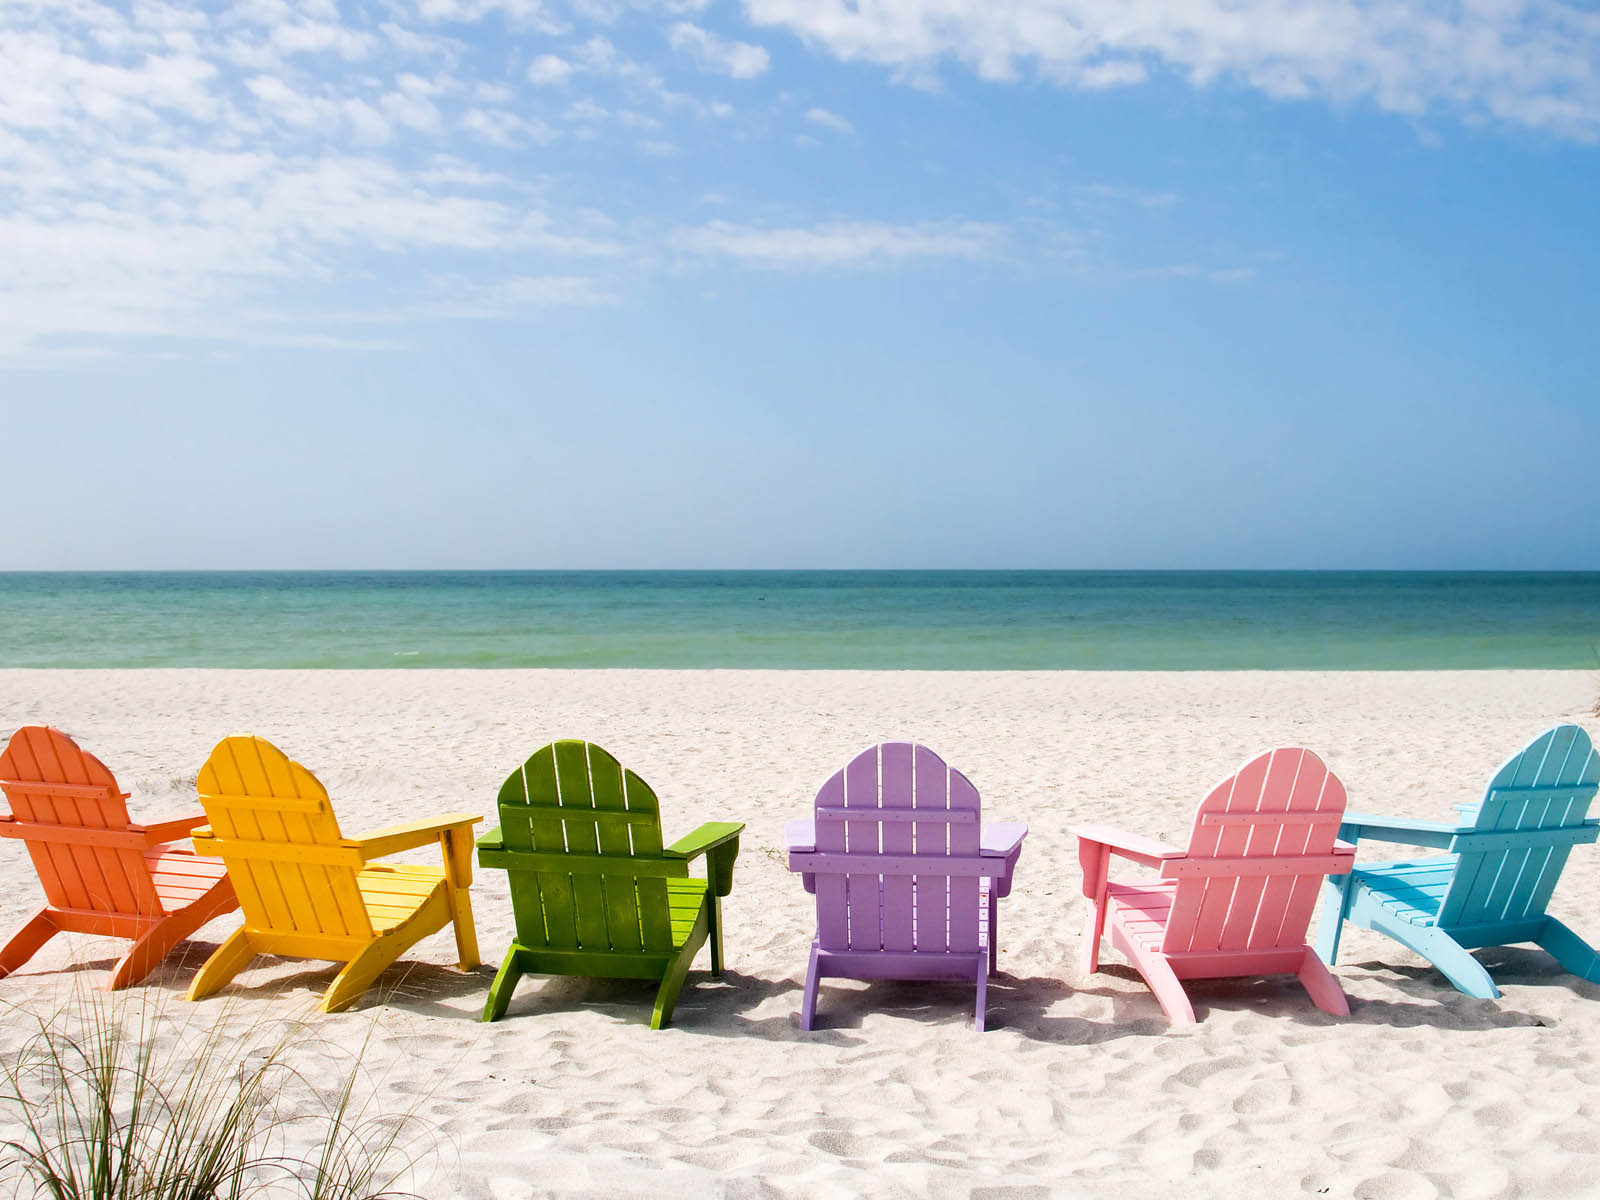 Beach Wallpapers Backgrounds Photos Picturesand Images for 1600x1200